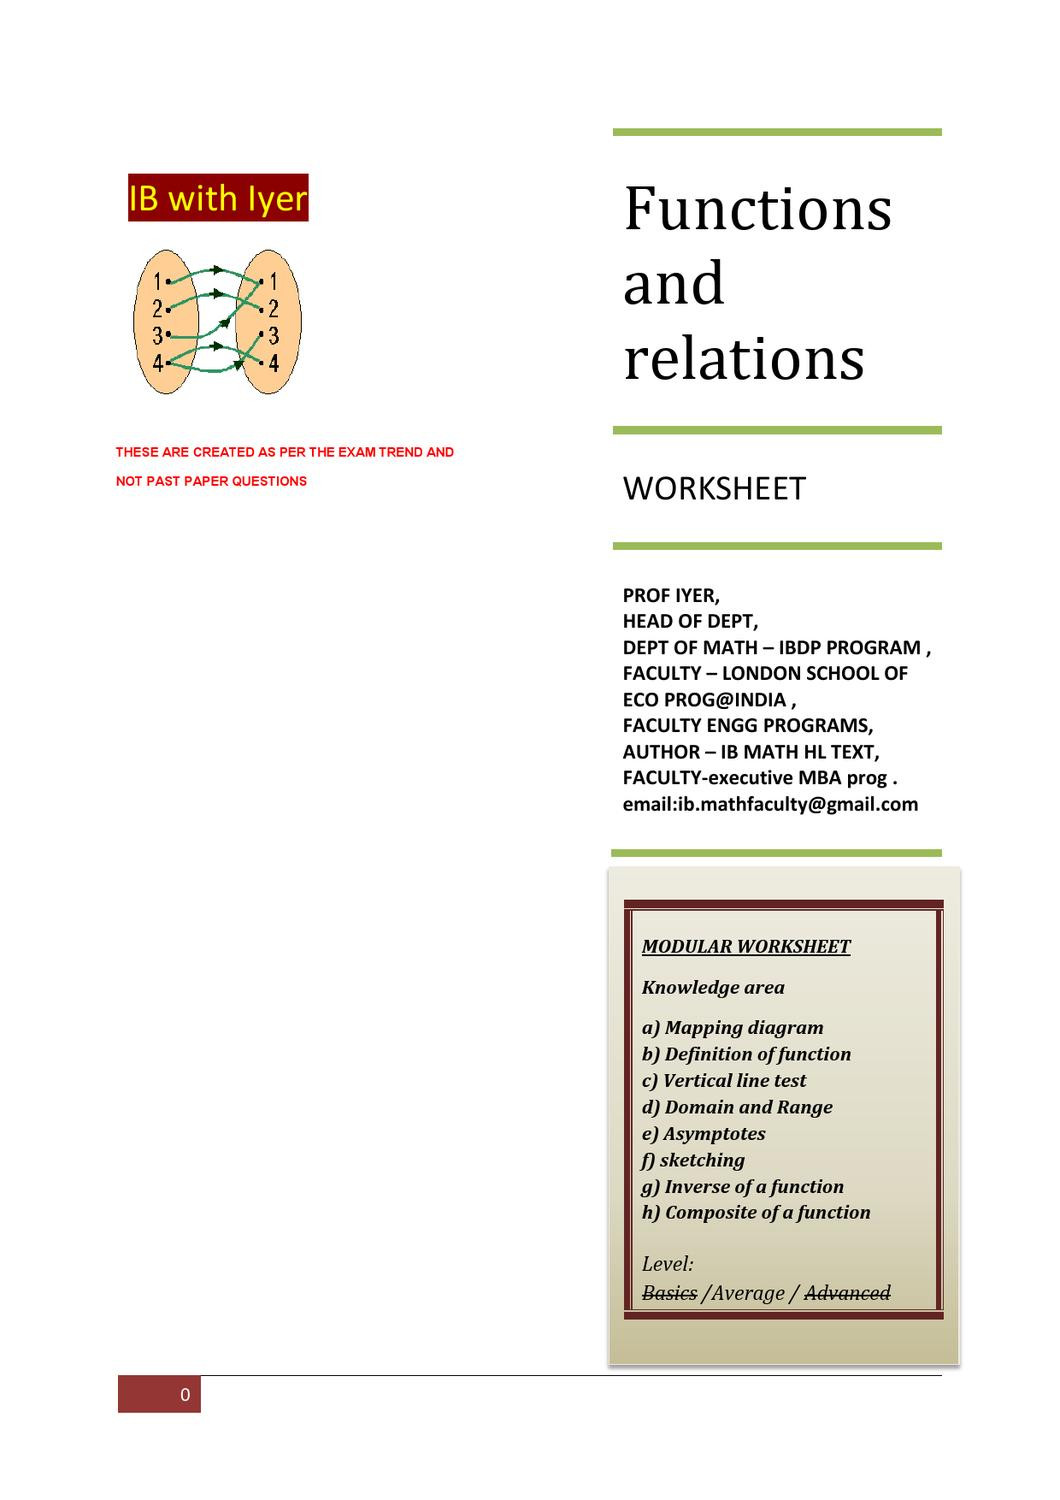 Functions and Relations Worksheet Functions and Relations Modular Ws by Prof Sriraman Iyer issuu